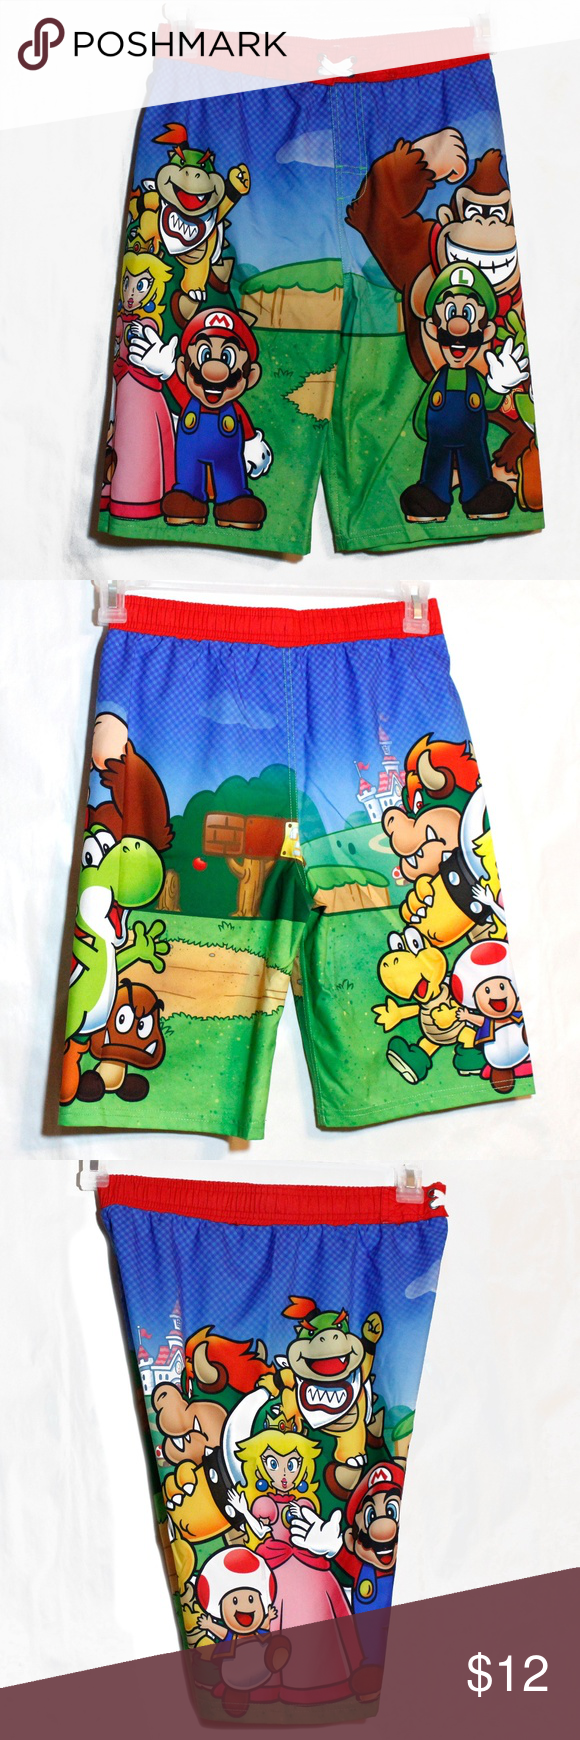 5c0e8749b0 NWOT Boys Swim Trunks Super Mario Brothers Large New never Worn. Bright All  Over Graphic